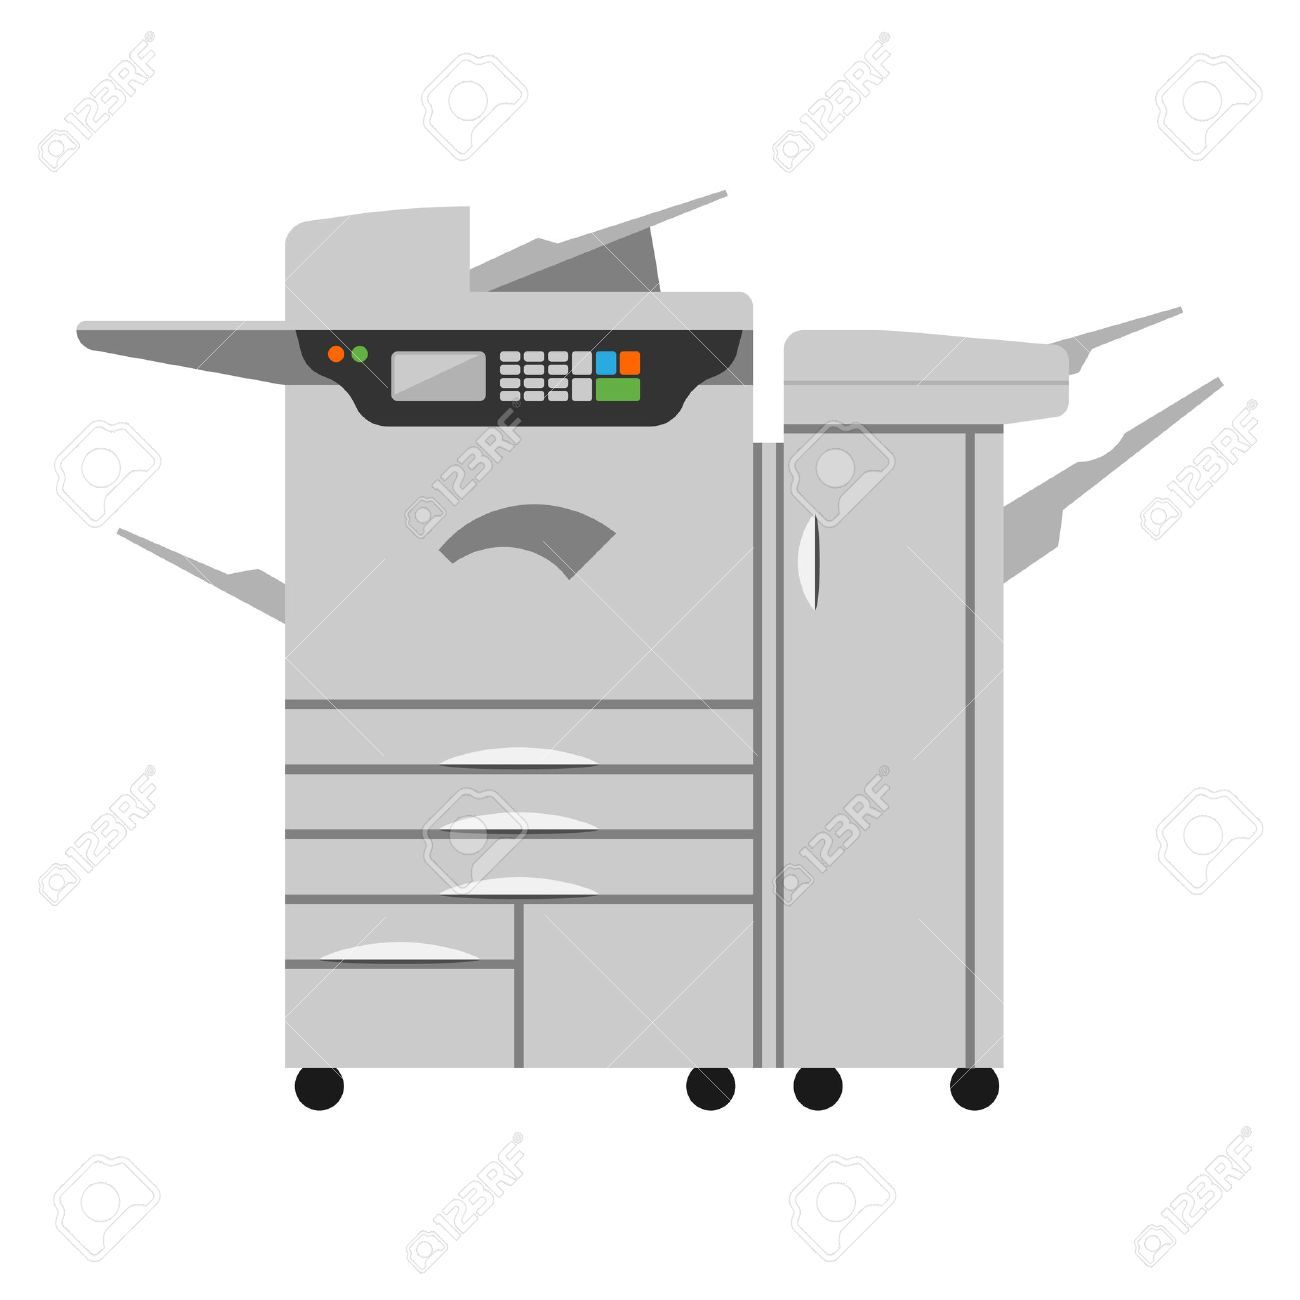 Photostat machine clipart banner free Photocopy machine clipart 7 » Clipart Portal banner free